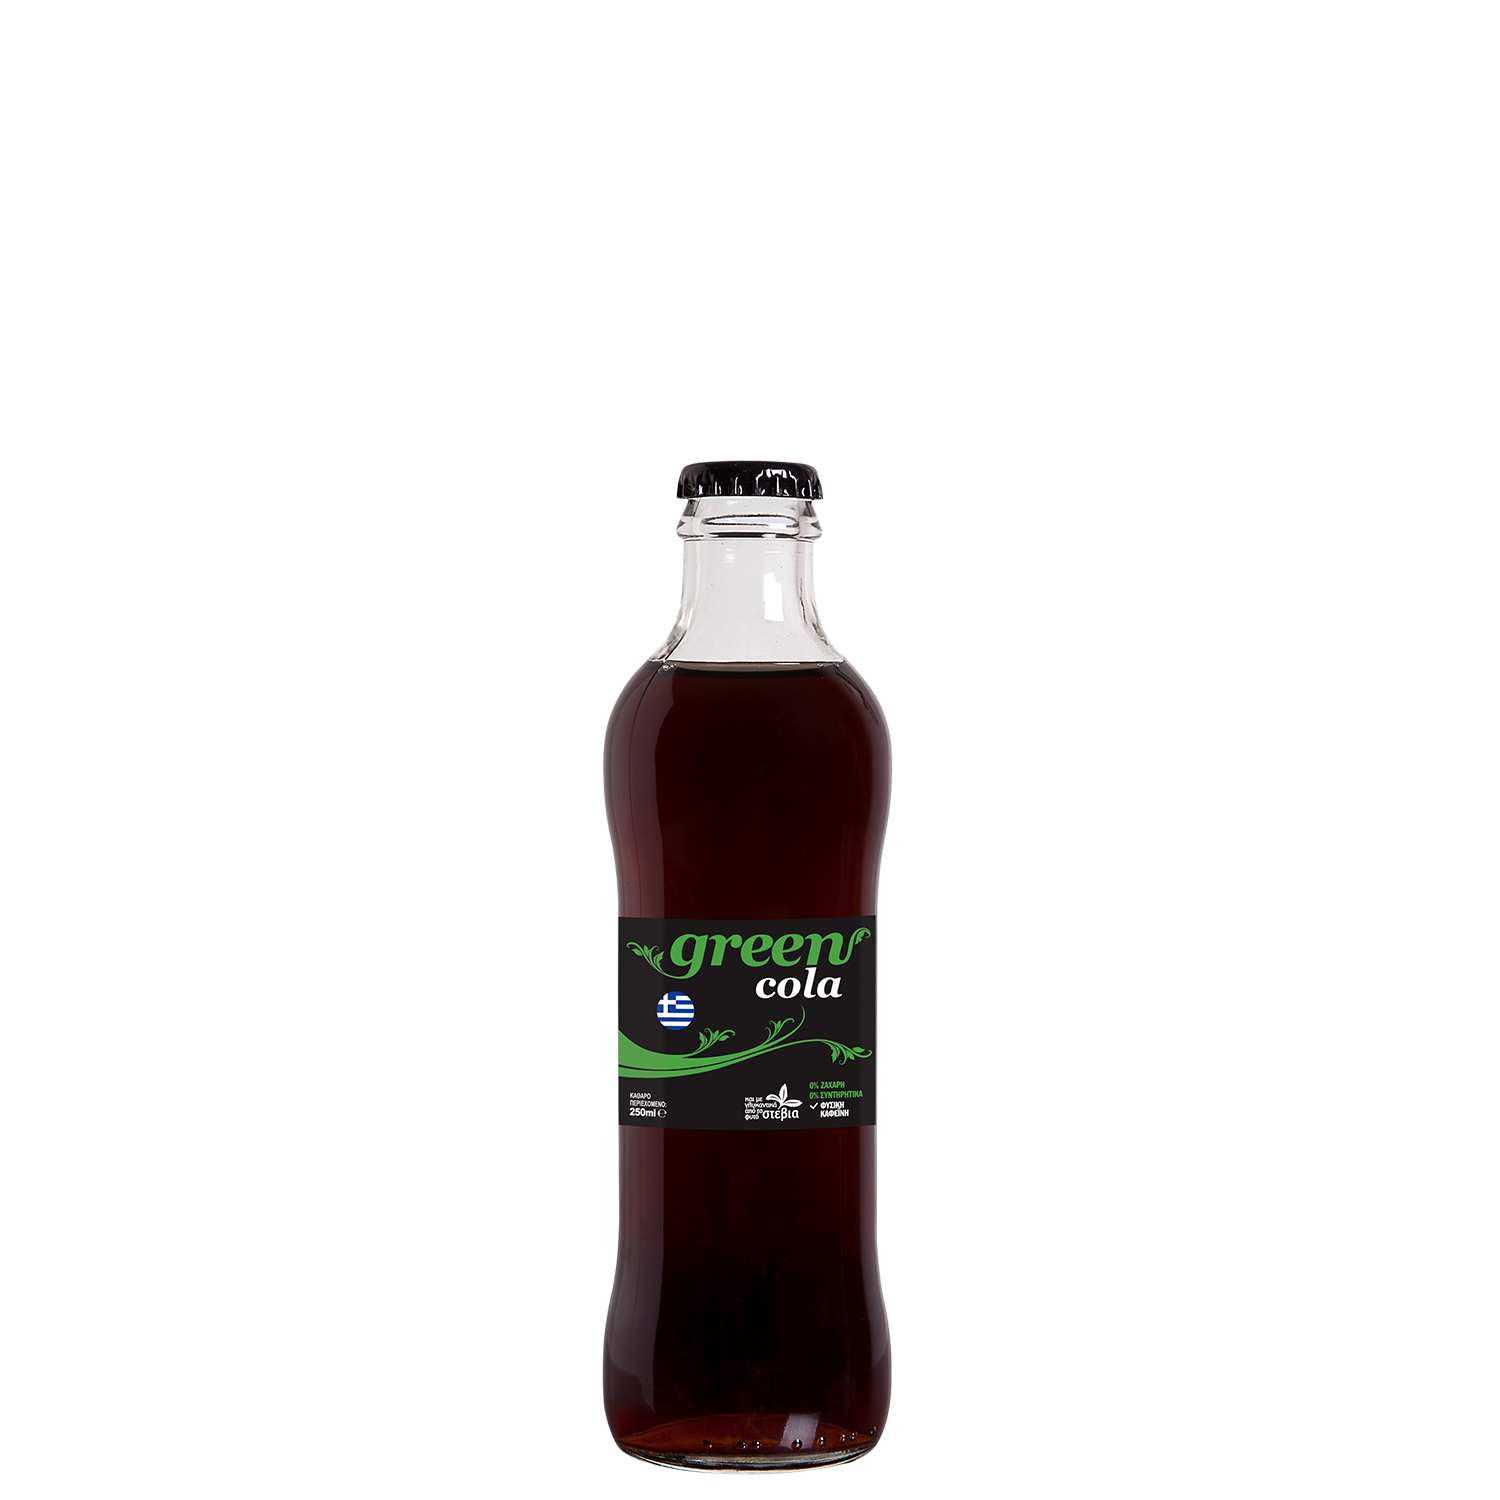 Green Cola - 250ml - glass bottle